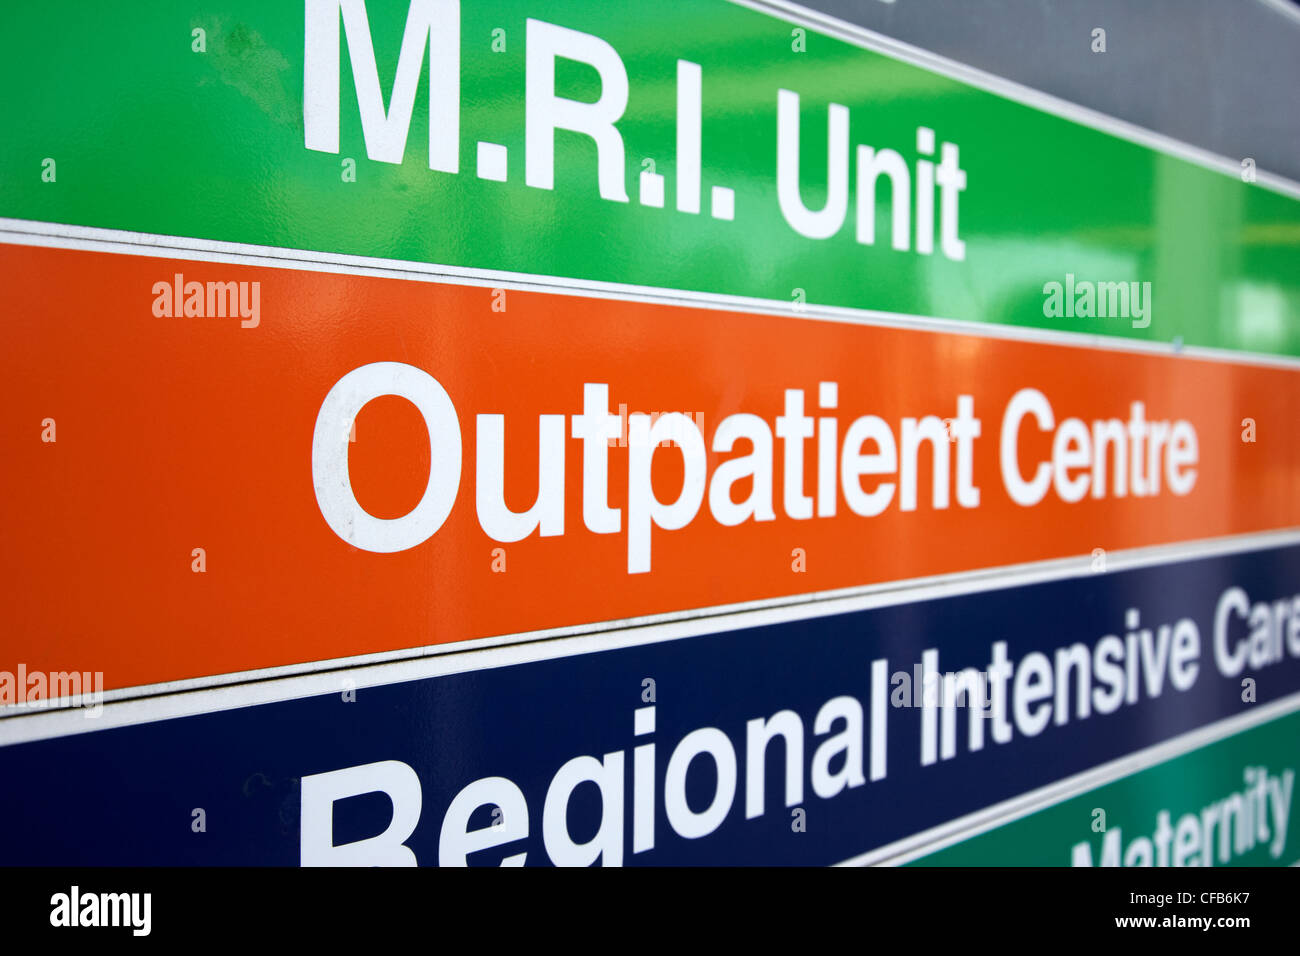 outpatient centre nhs hospital direction signs signpost Belfast Northern Ireland UK - Stock Image